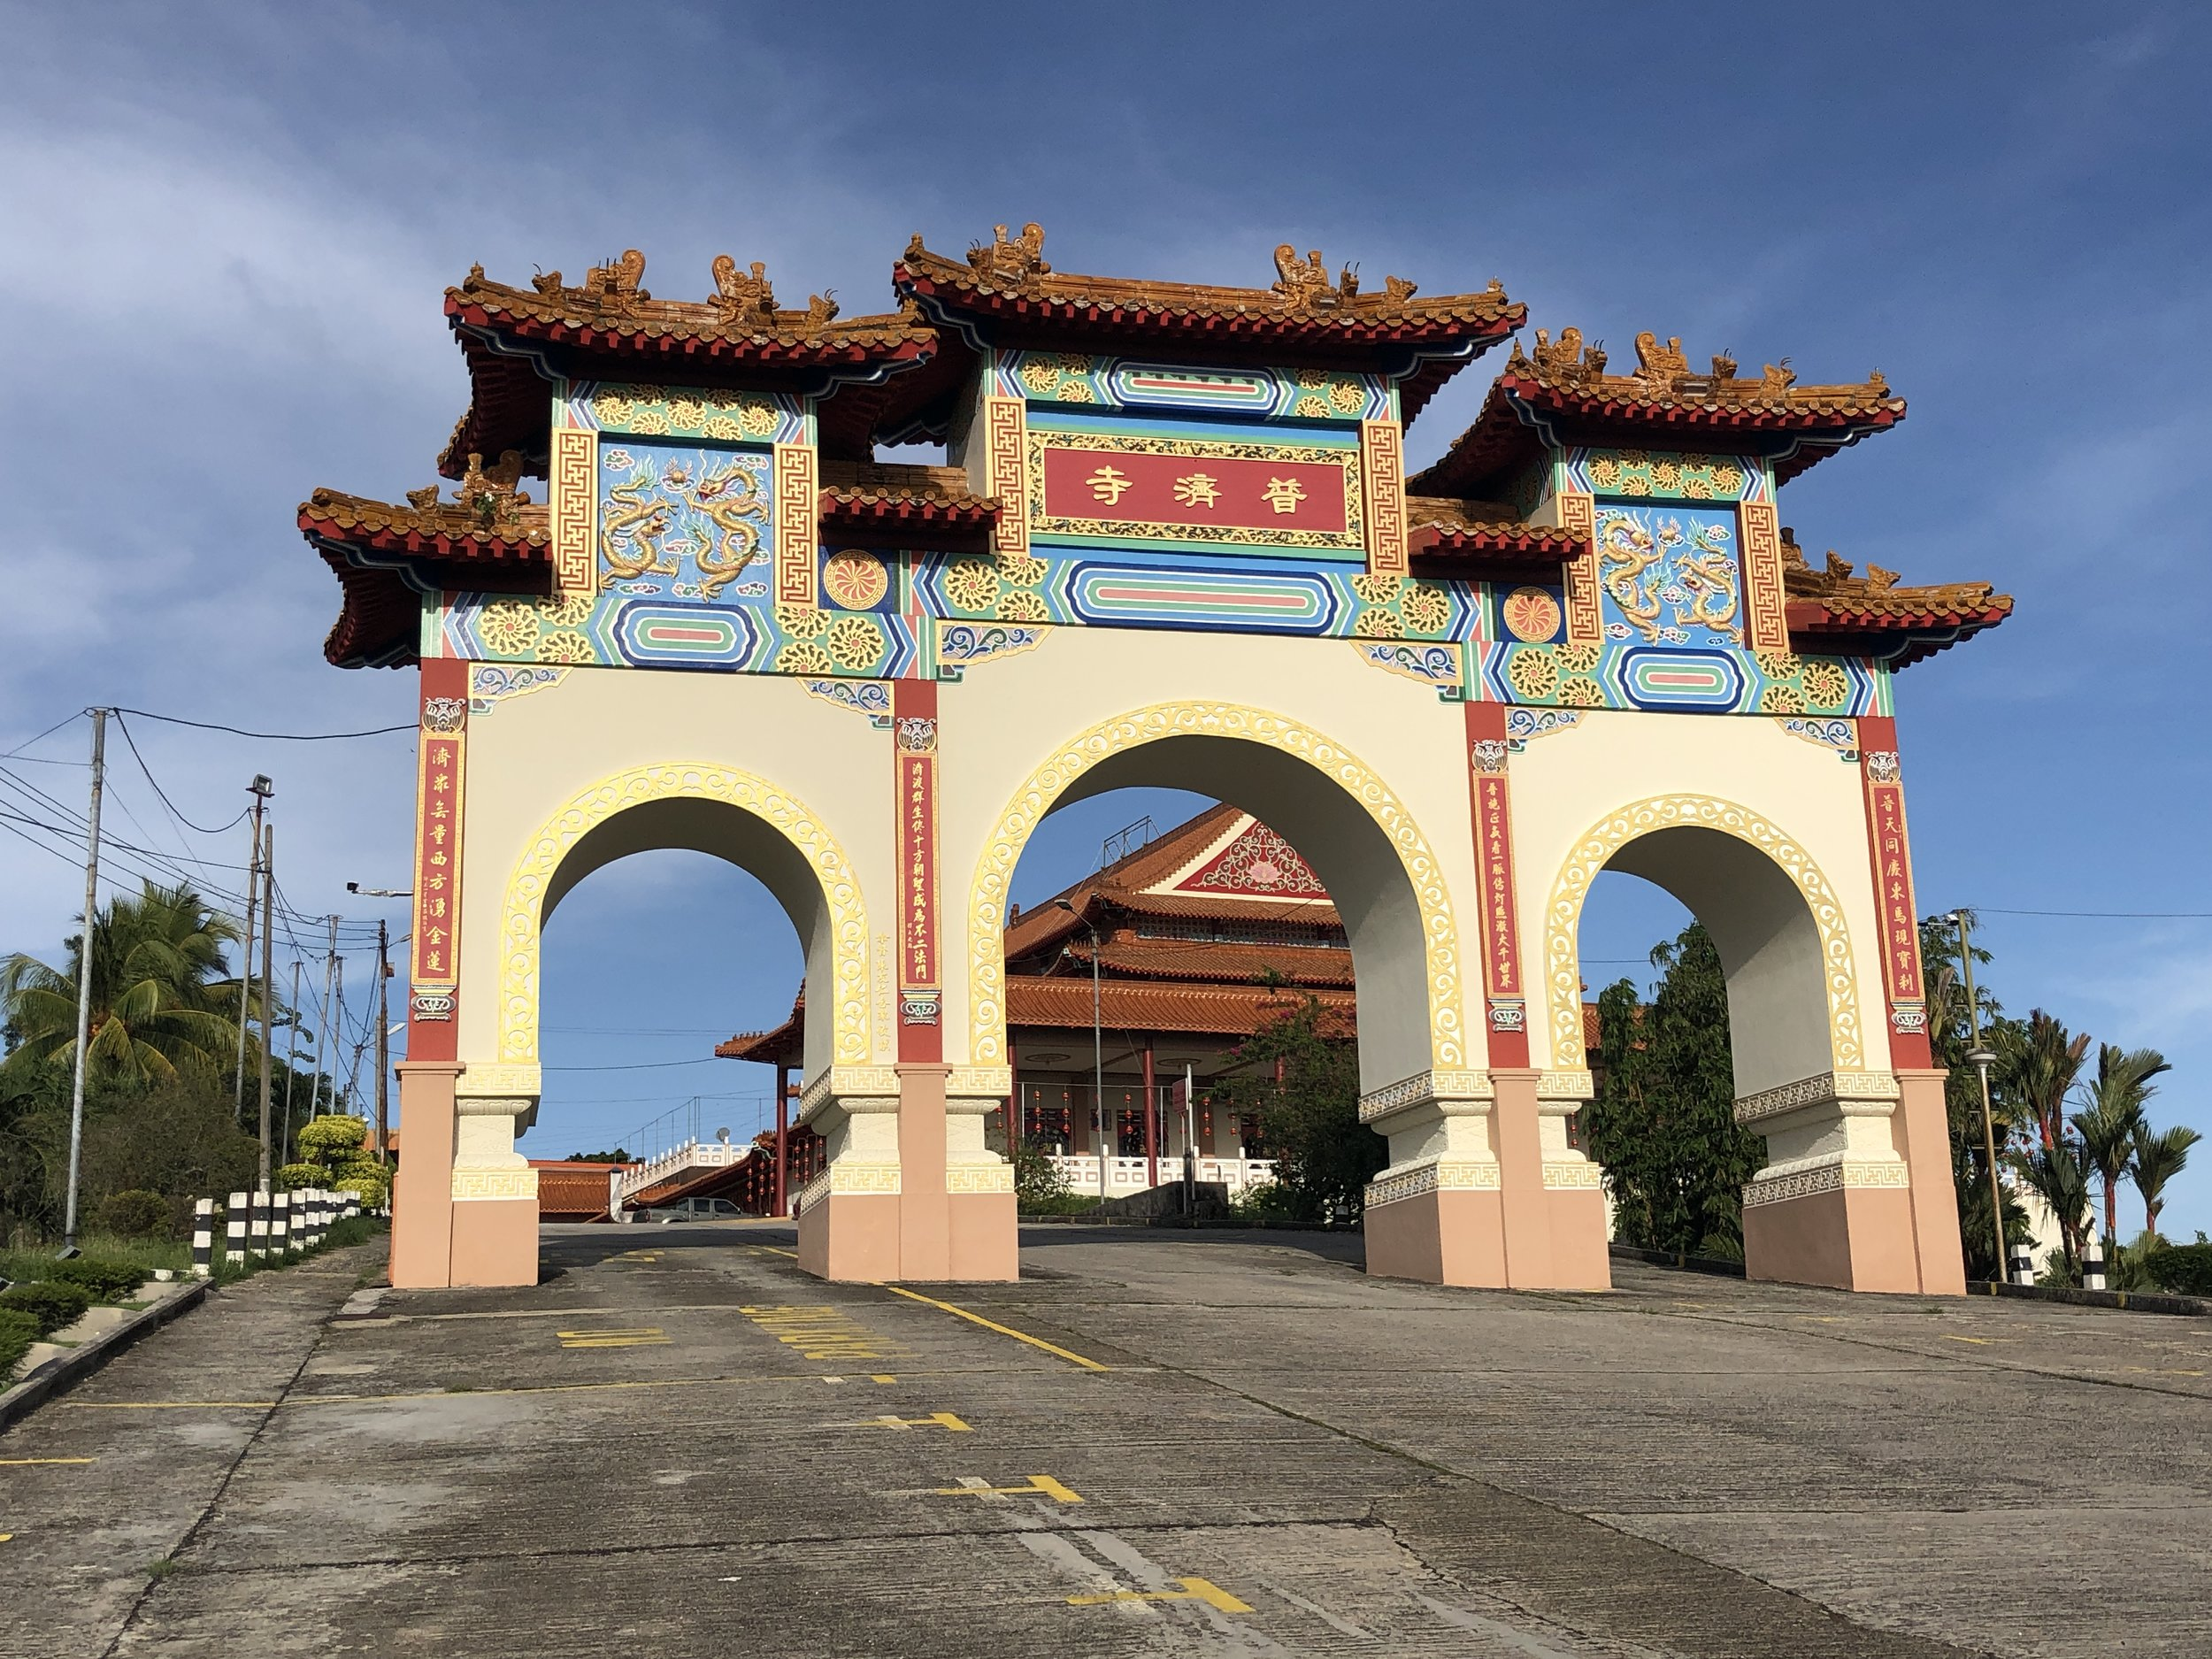 The entrance to Puu Jih Shih Buddhist Temple